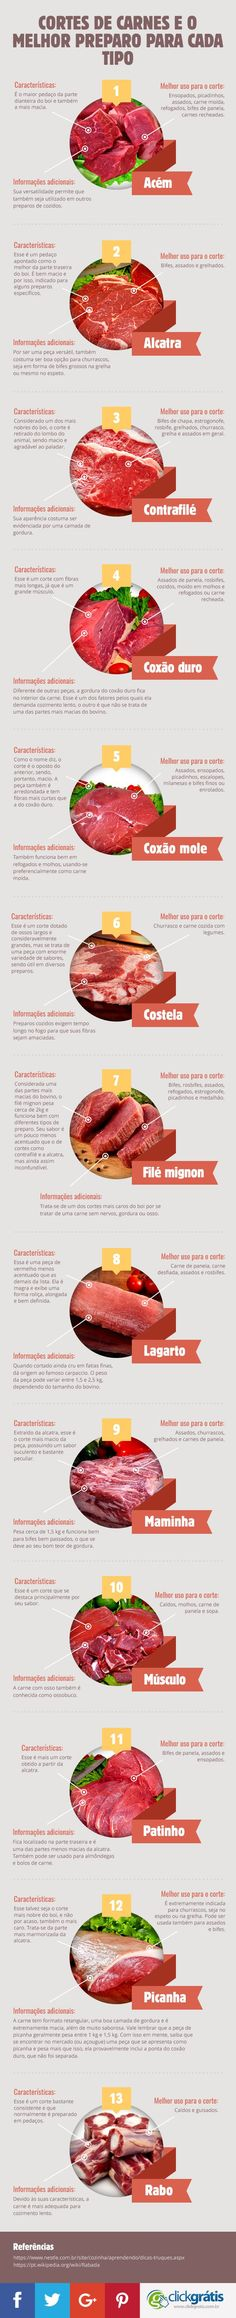 Conheça o infográfico sobre Cortes de carnes e o melhor preparo para cada tipo Food Porn, Meat Recipes, Cooking Recipes, Sushi, Cooking Time, Menu Dieta, Junk Food, Chefs, Carne Churrasco